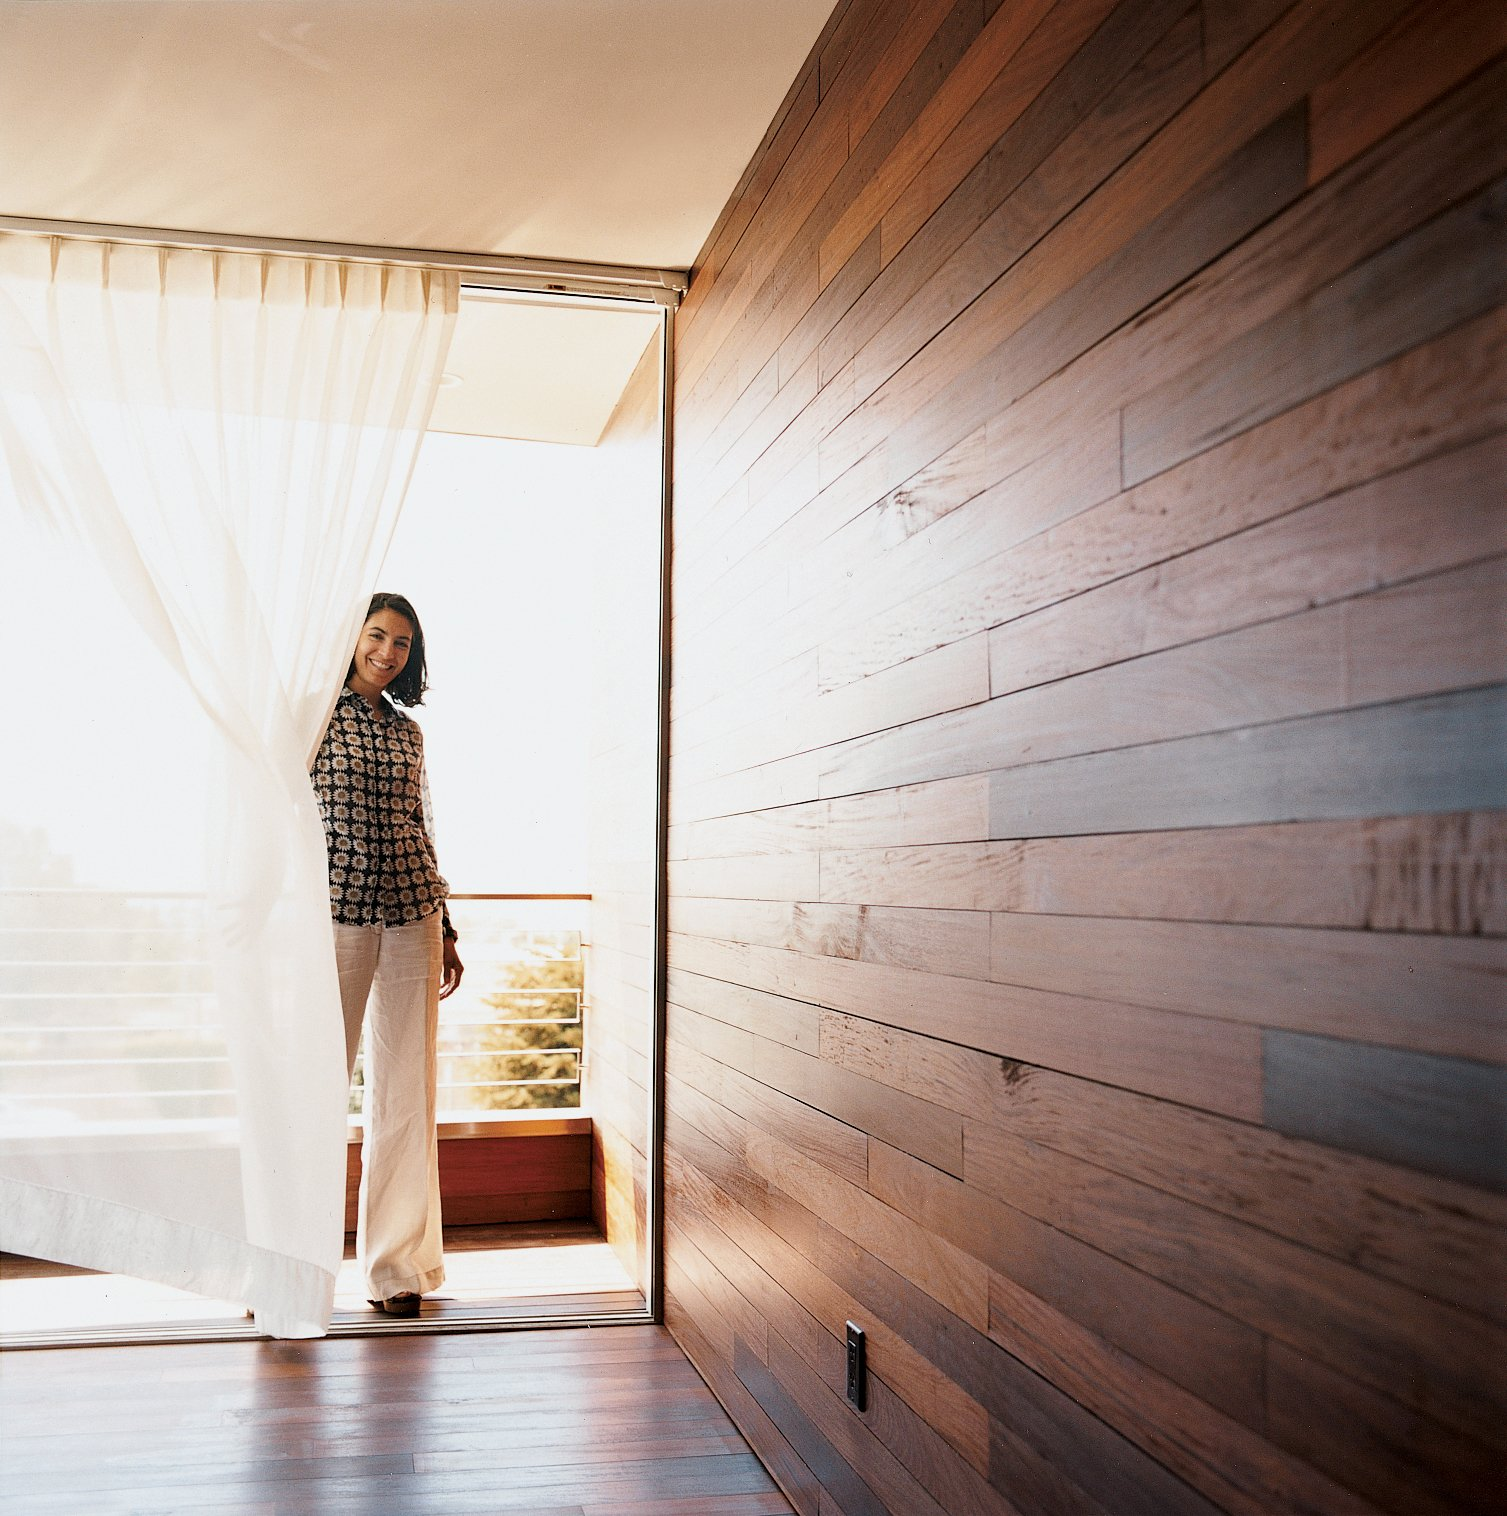 The Mariscals' bedroom opens out onto a small triangular patio. The exterior's ipe cladding also makes up the walls and floor of the master bedroom, further inviting the outside in.